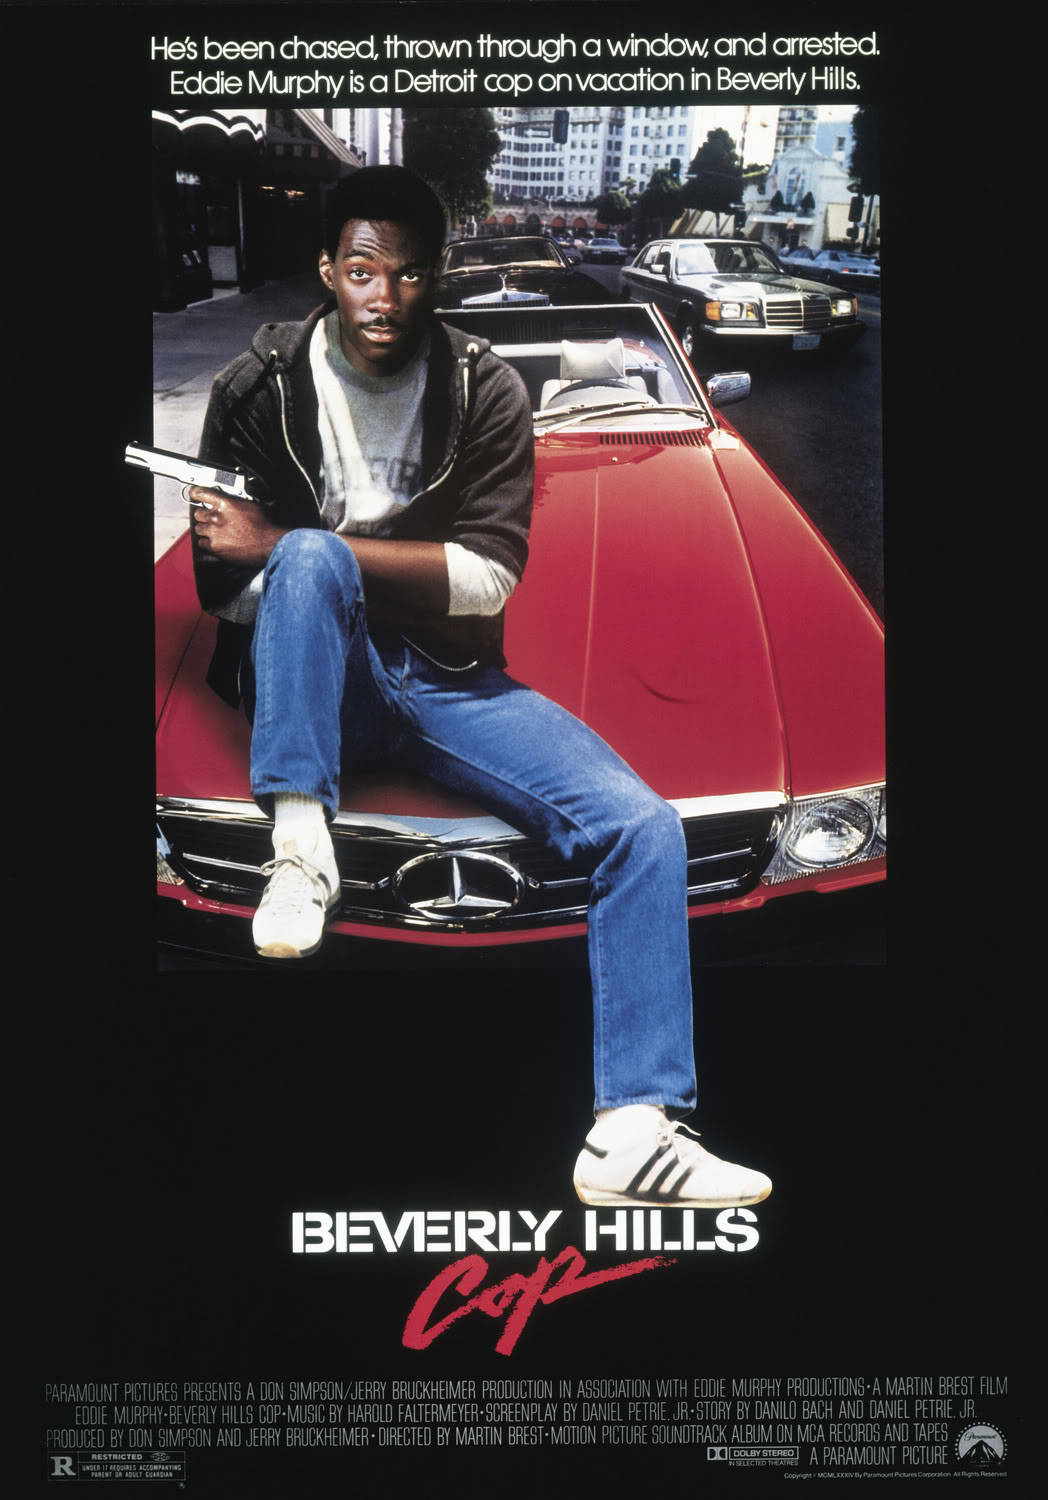 BACK IN THE DAY |12/5/84| The movie, Beverly Hills Cop, is released in theaters.